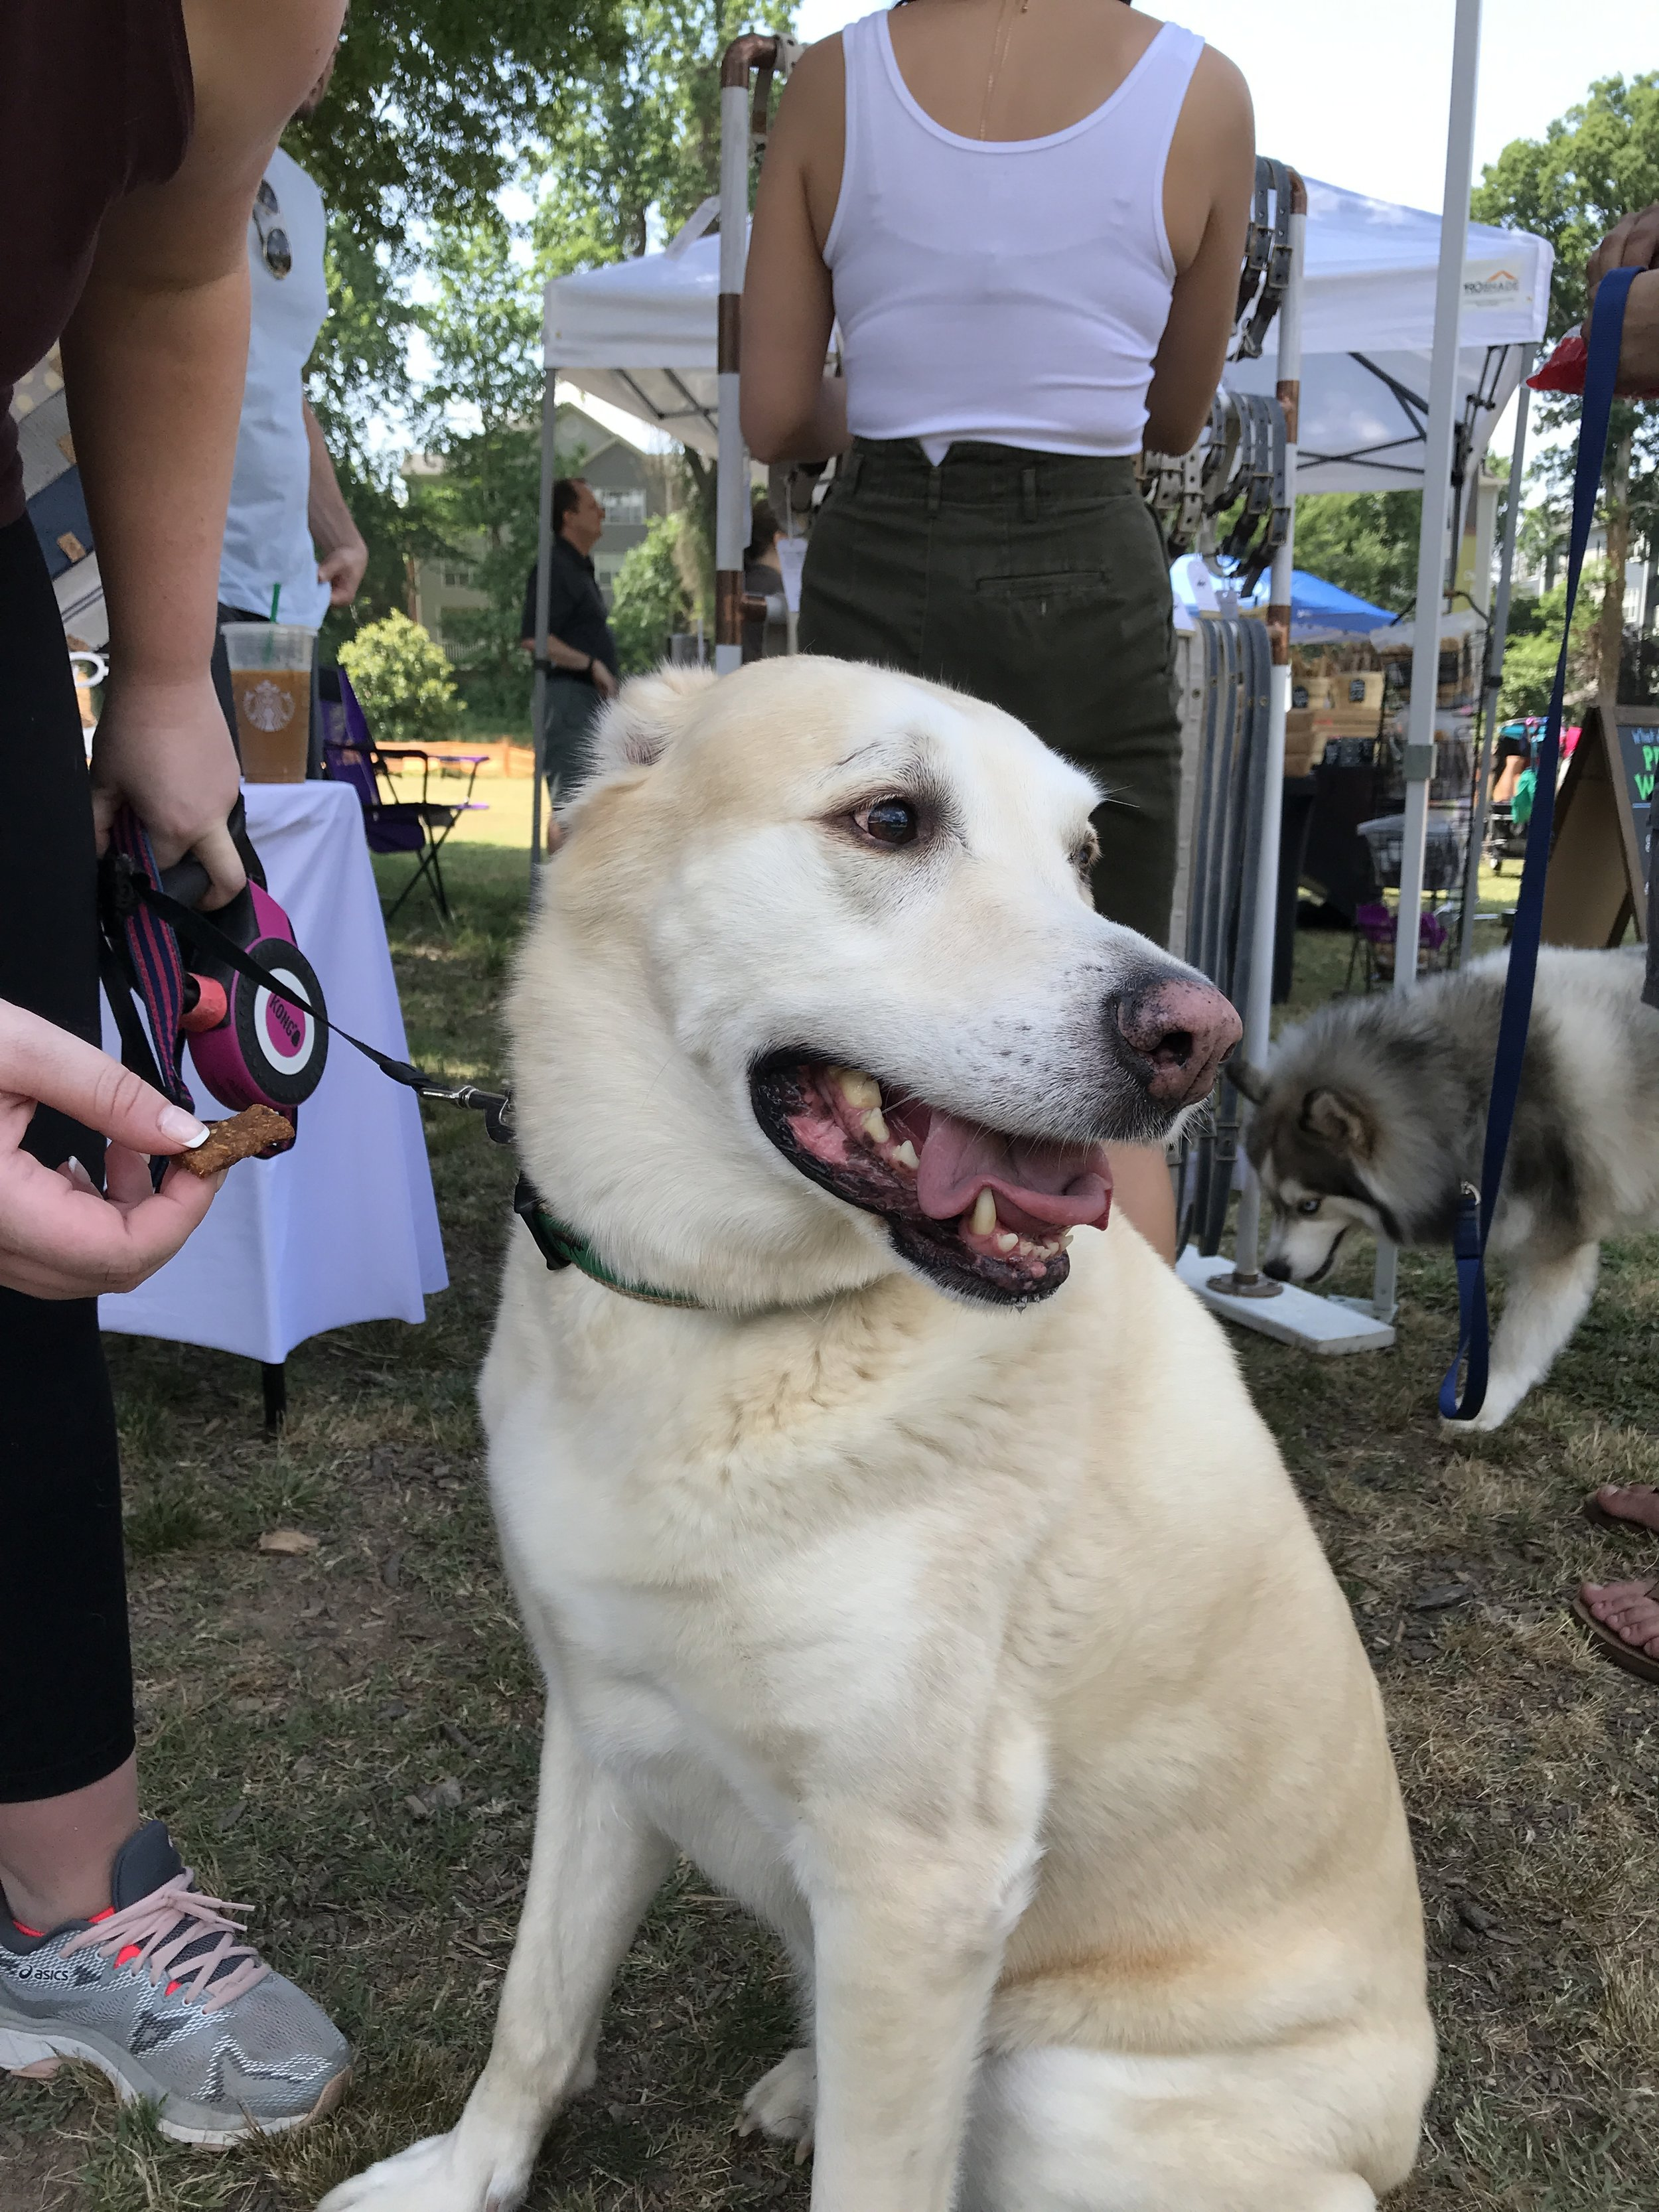 Dog friendly events